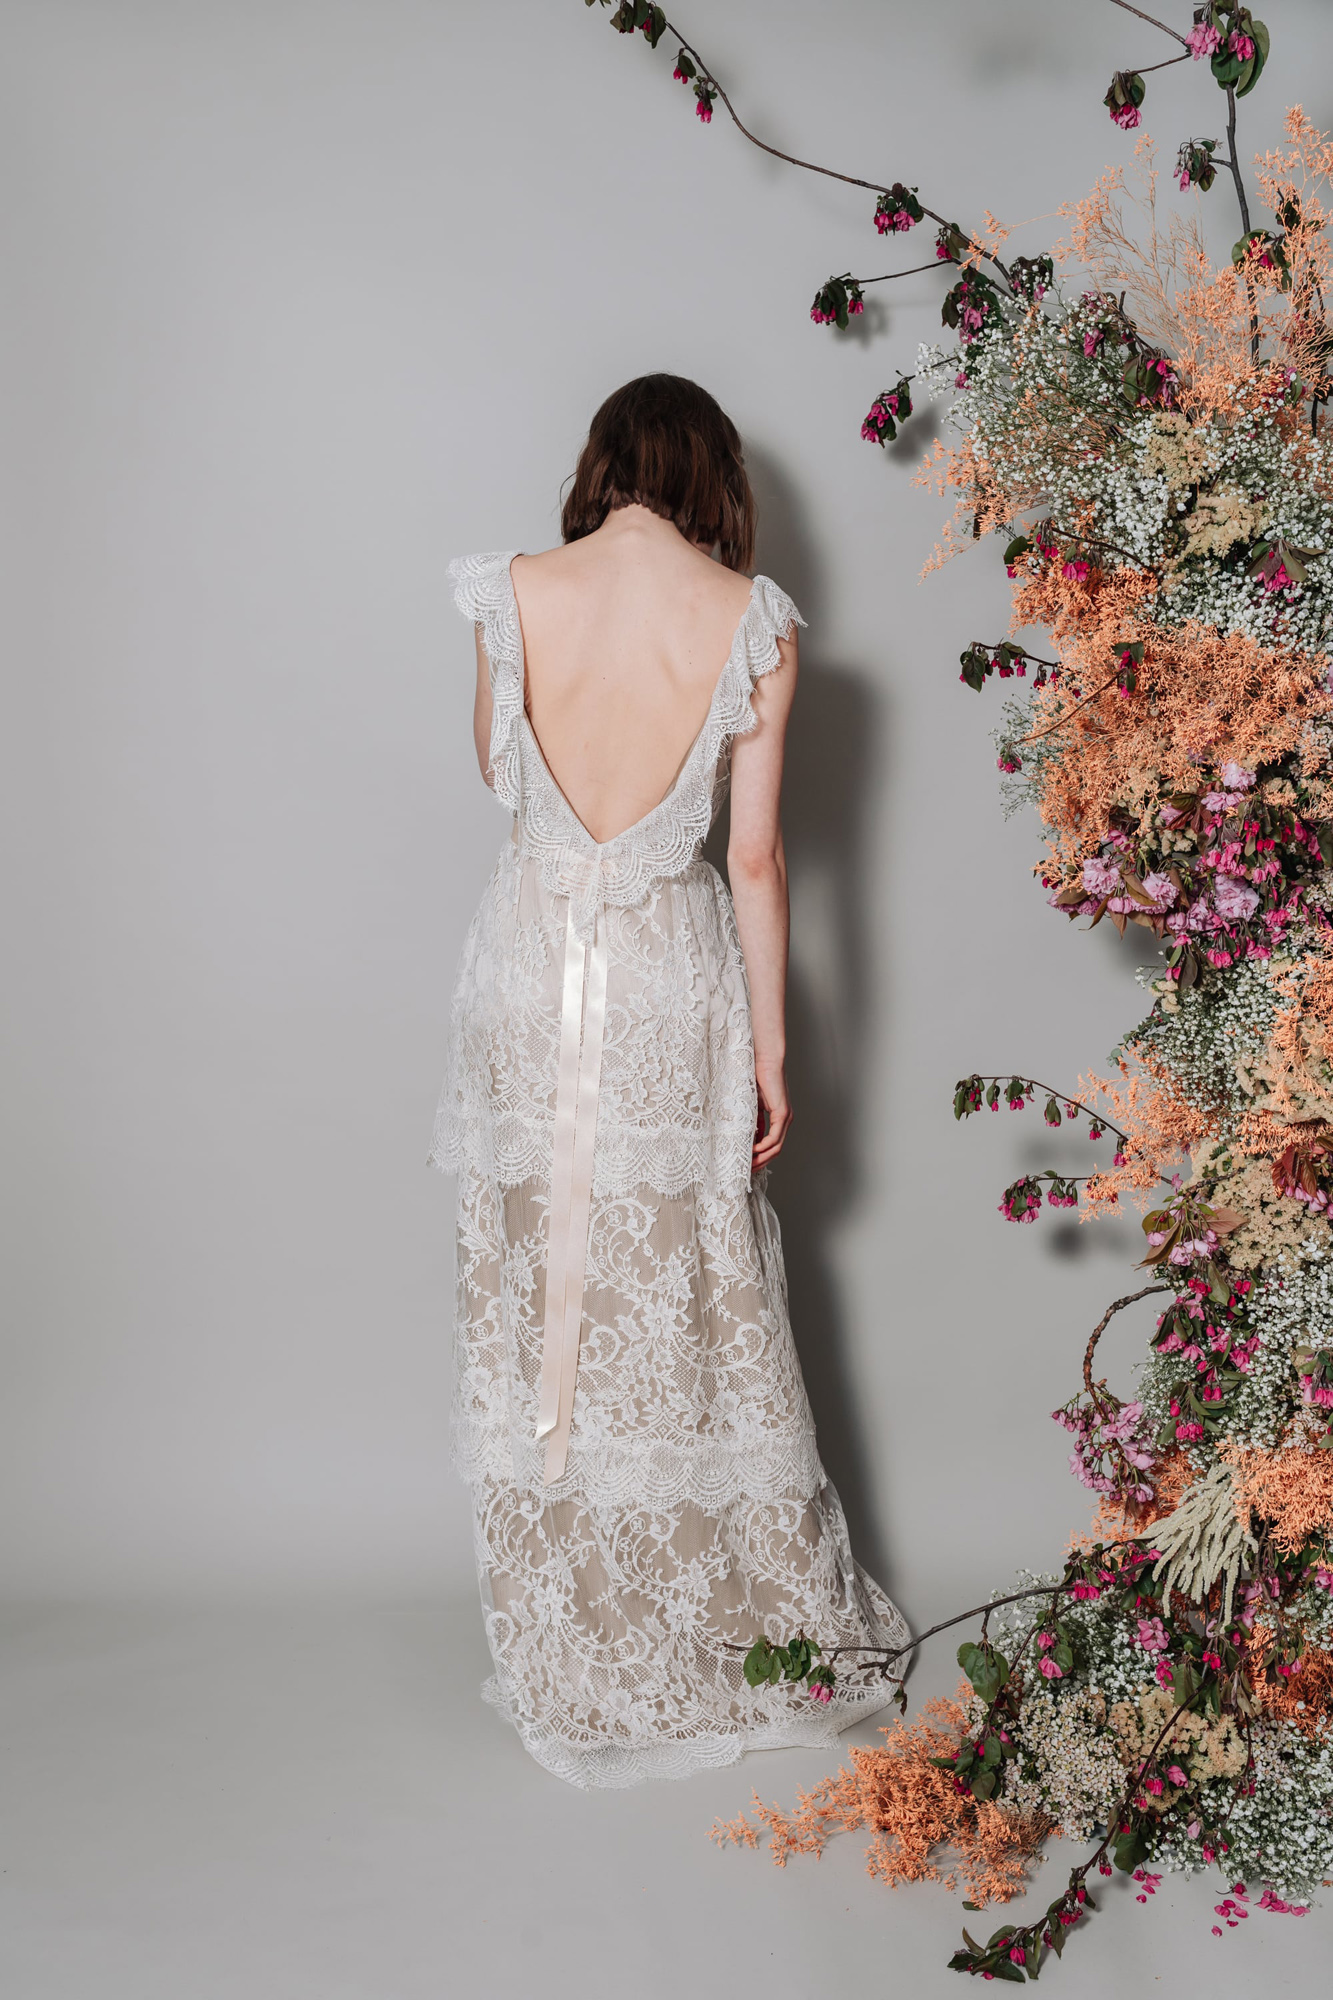 Kate-Beaumont-Sheffield-Wild-Lupin-Bohemian-Lace-Wedding-Gown-Tiered-Skirt-11.jpg